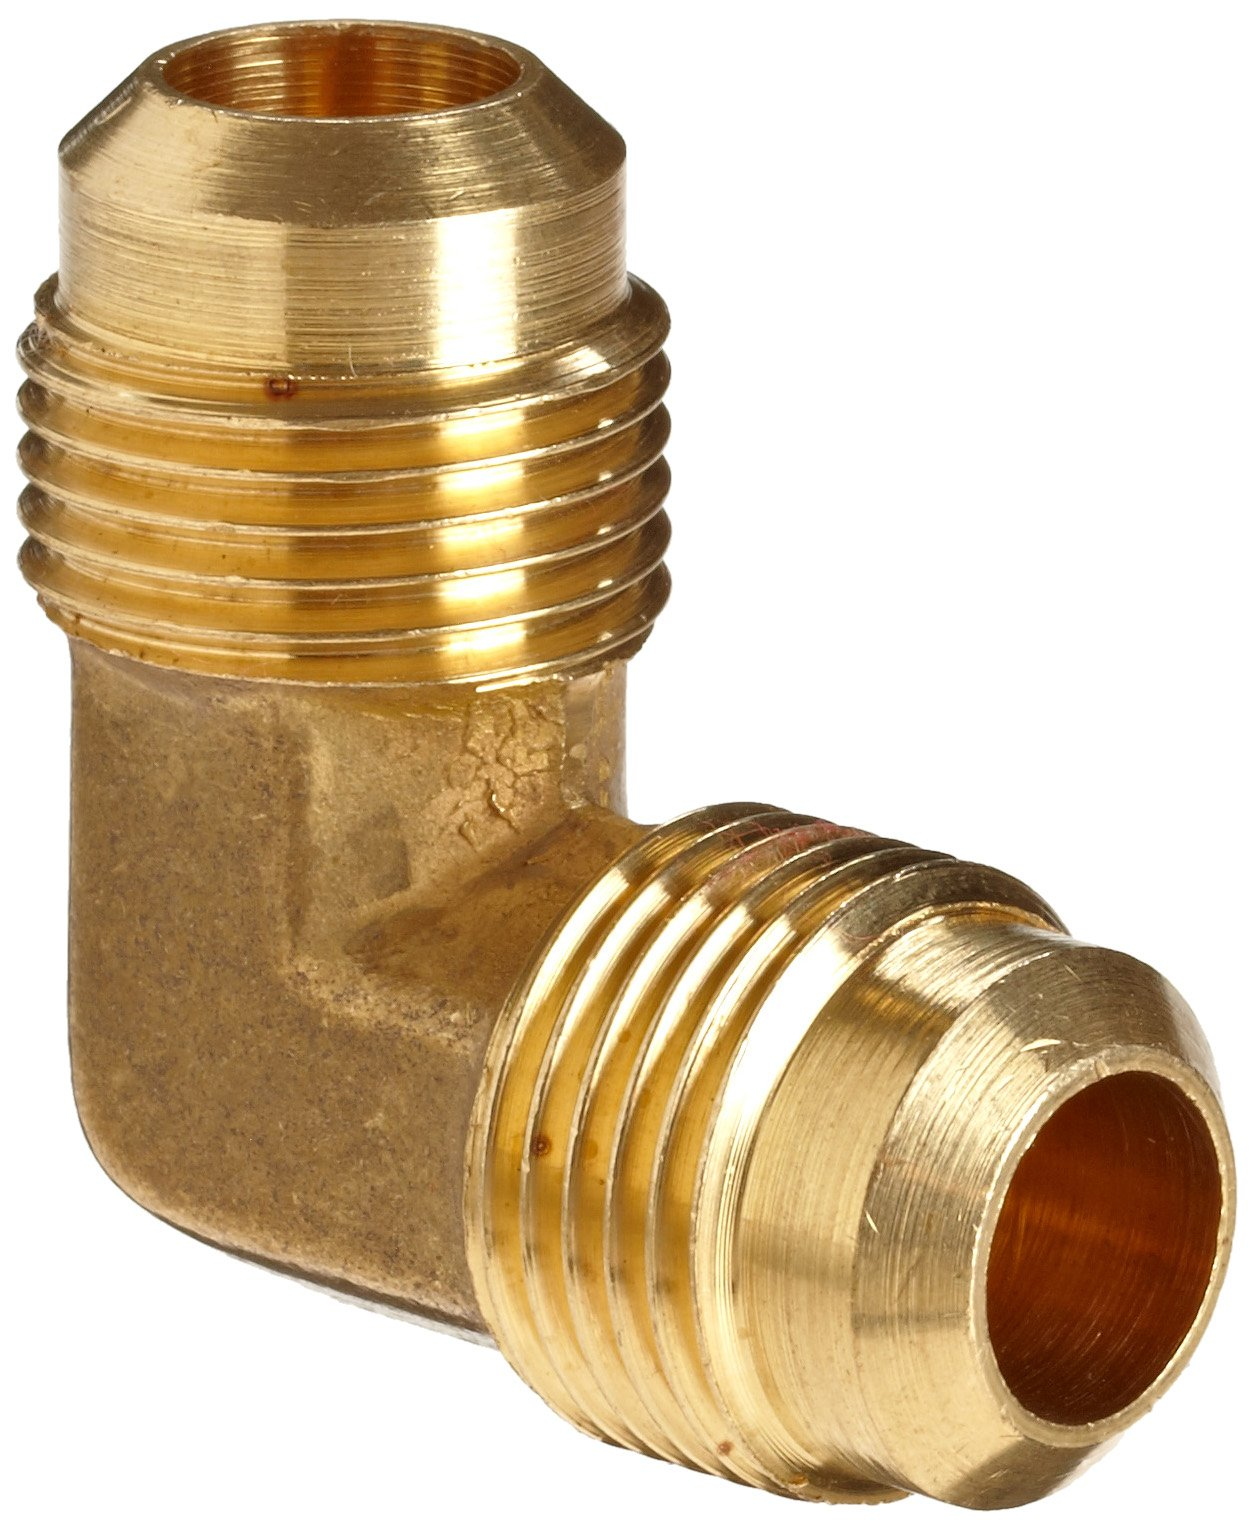 Anderson Metals Brass Tube Fitting, 90 Degree Elbow, 1/2'' x 1/2'' Flare